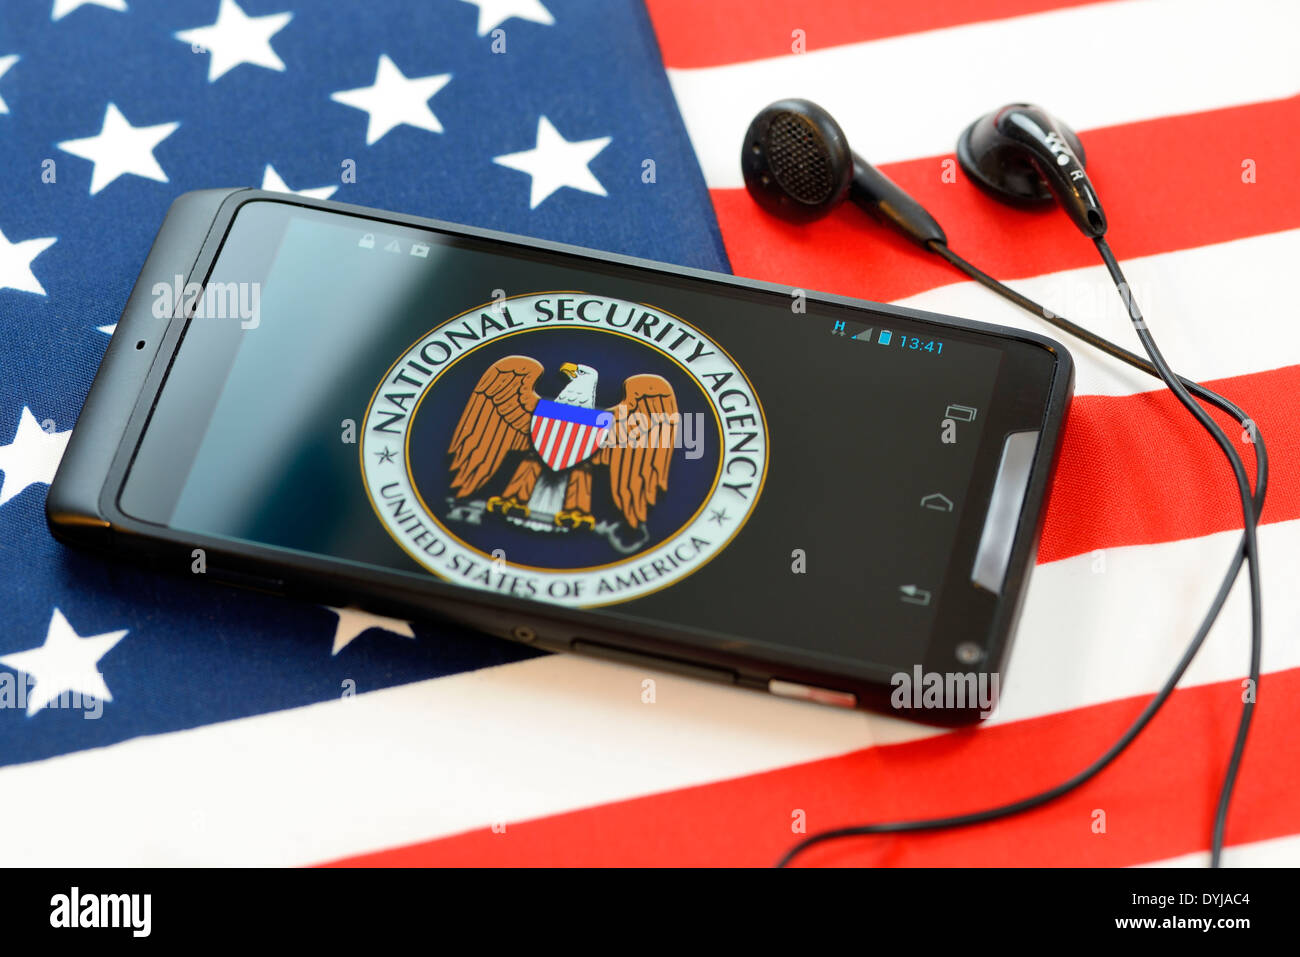 Phone with NSA logo on U.S. flag, listening affair, Handy mit NSA-Logo auf US-Fahne, Abhöraffäre - Stock Image